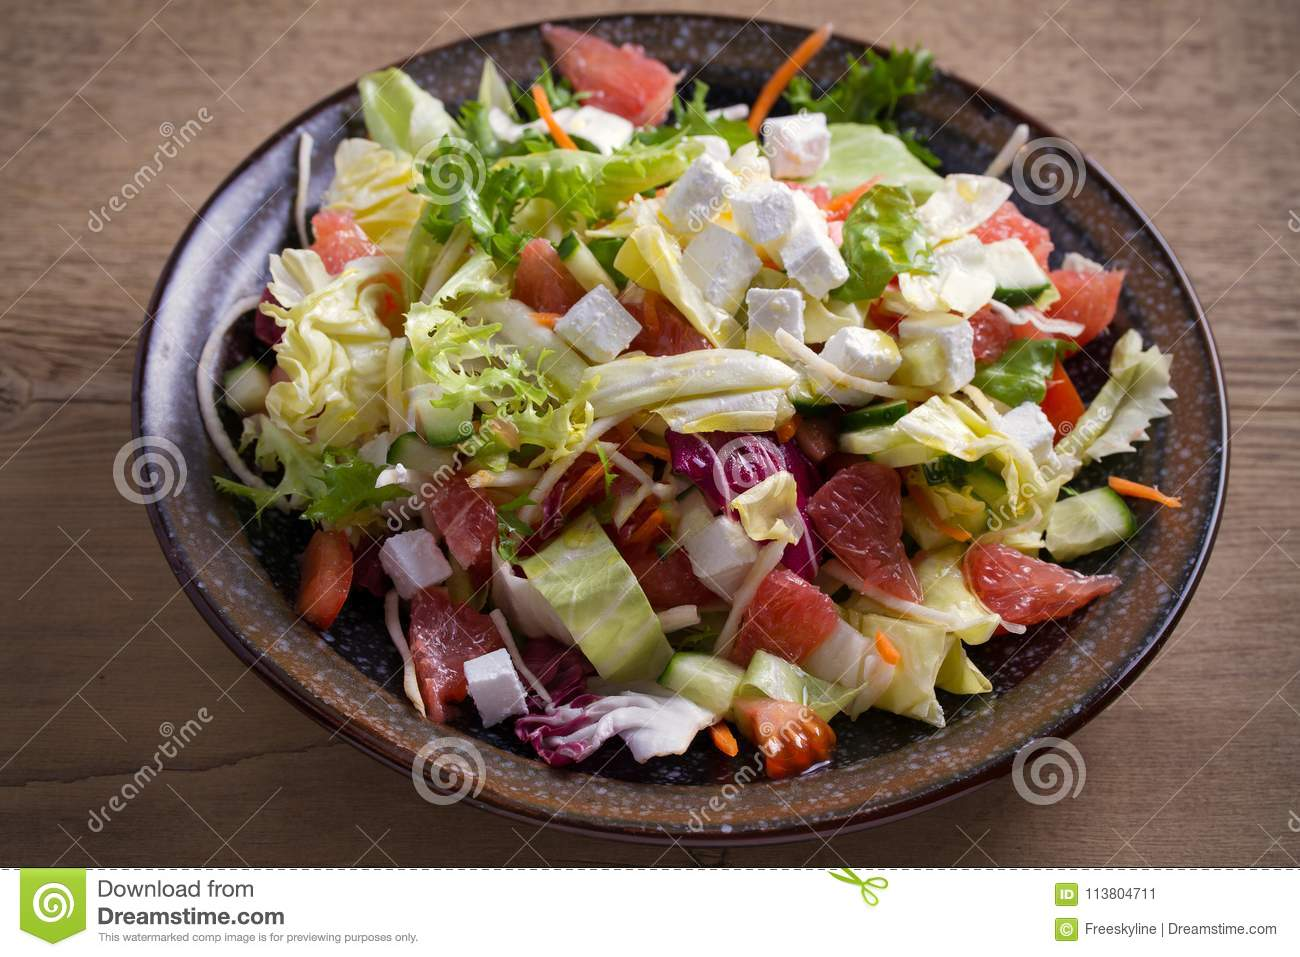 Healthy vegetarian food: citrus grapefruit, tomato, lettuce and cucumber salad with feta cheese in bowl on wooden table.